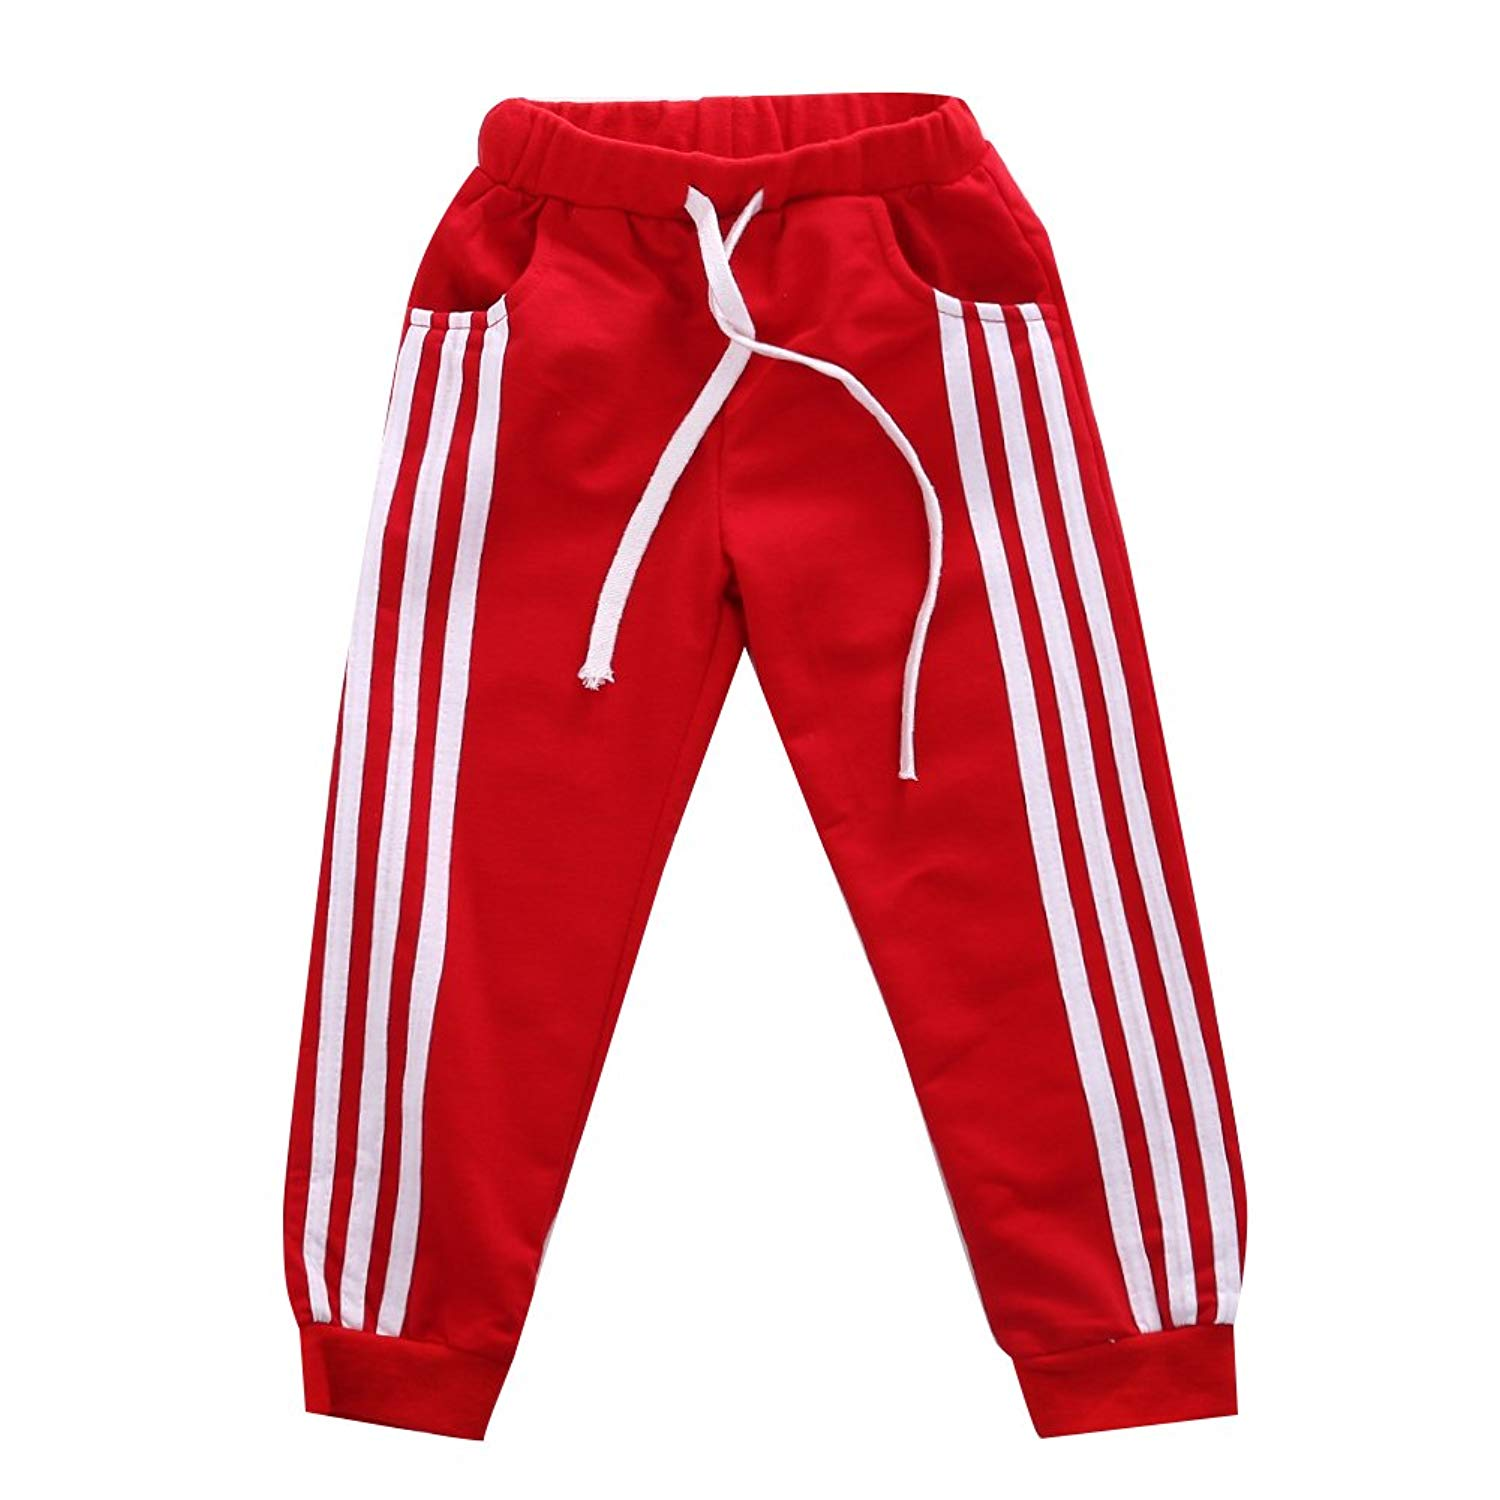 ba5cd928ad Get Quotations · GOODBEE Kids Boys Cotton Casual Tracksuit Bottoms Sports  Exercise Fitness Jogging Pants